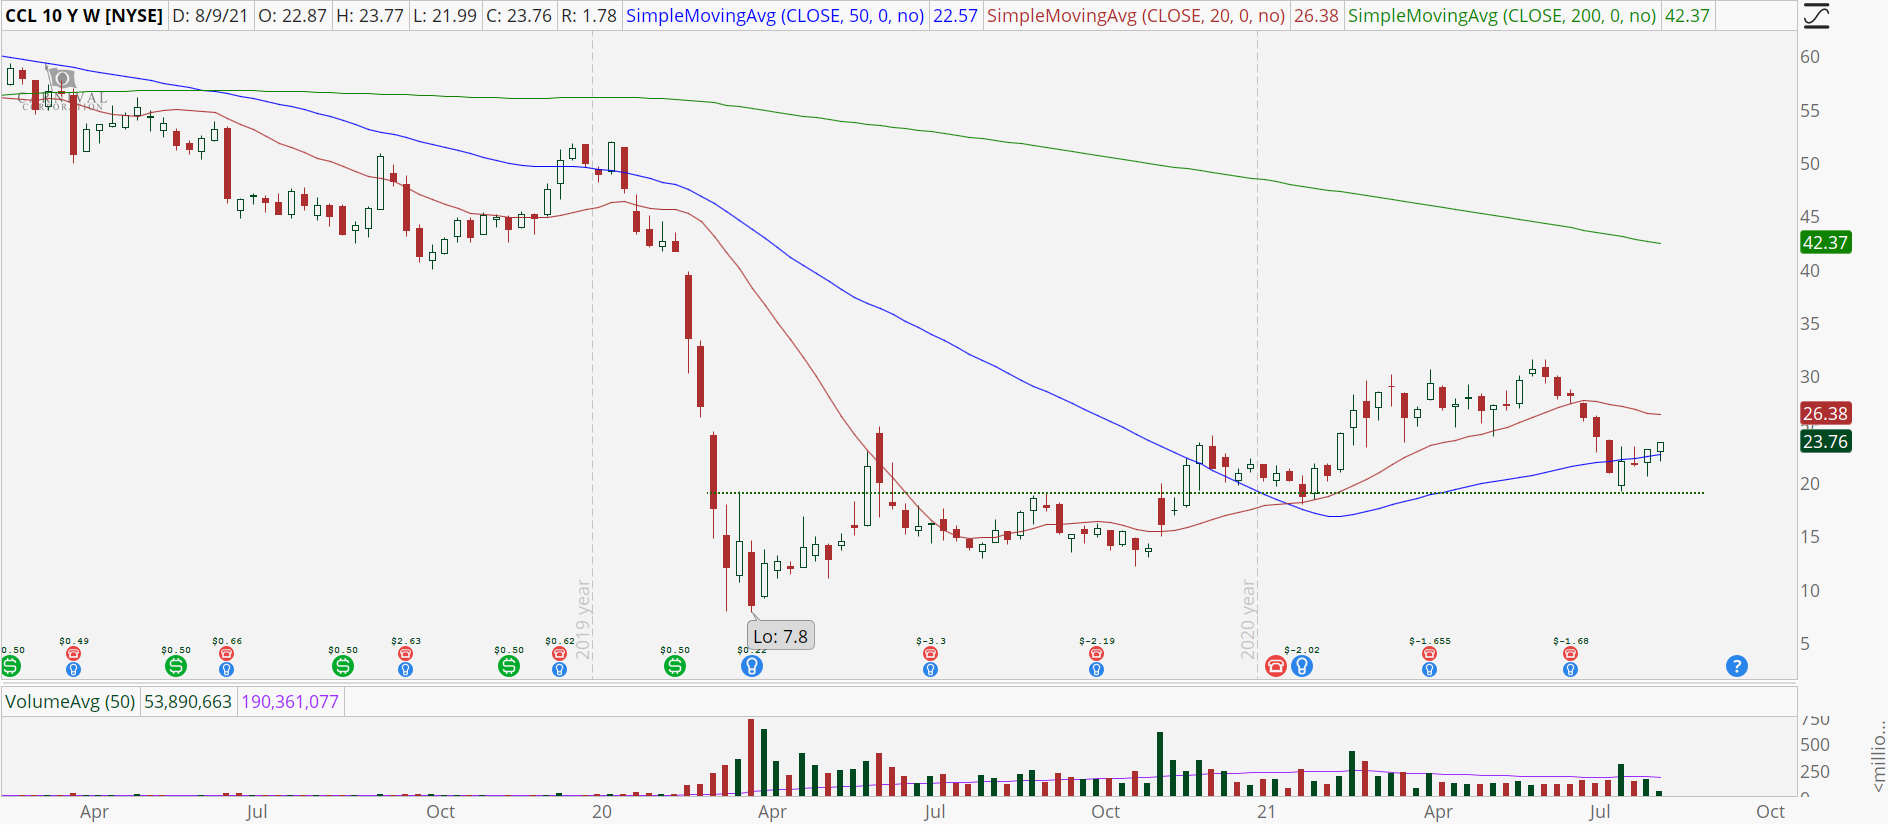 Carnival (CCL) weekly stock chart with bullish reversal